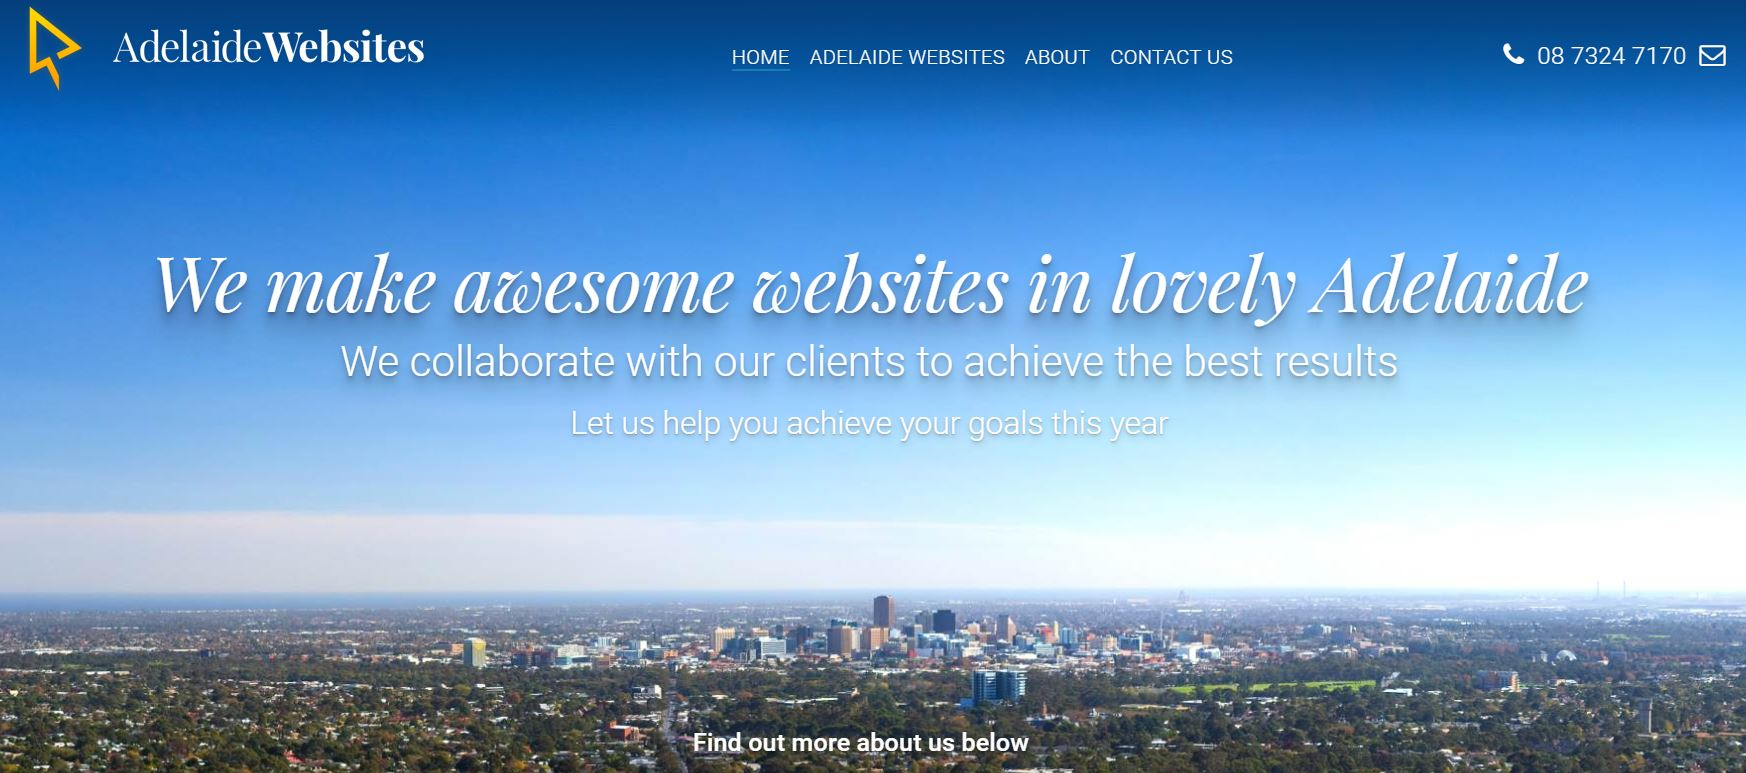 Adelaide Websites